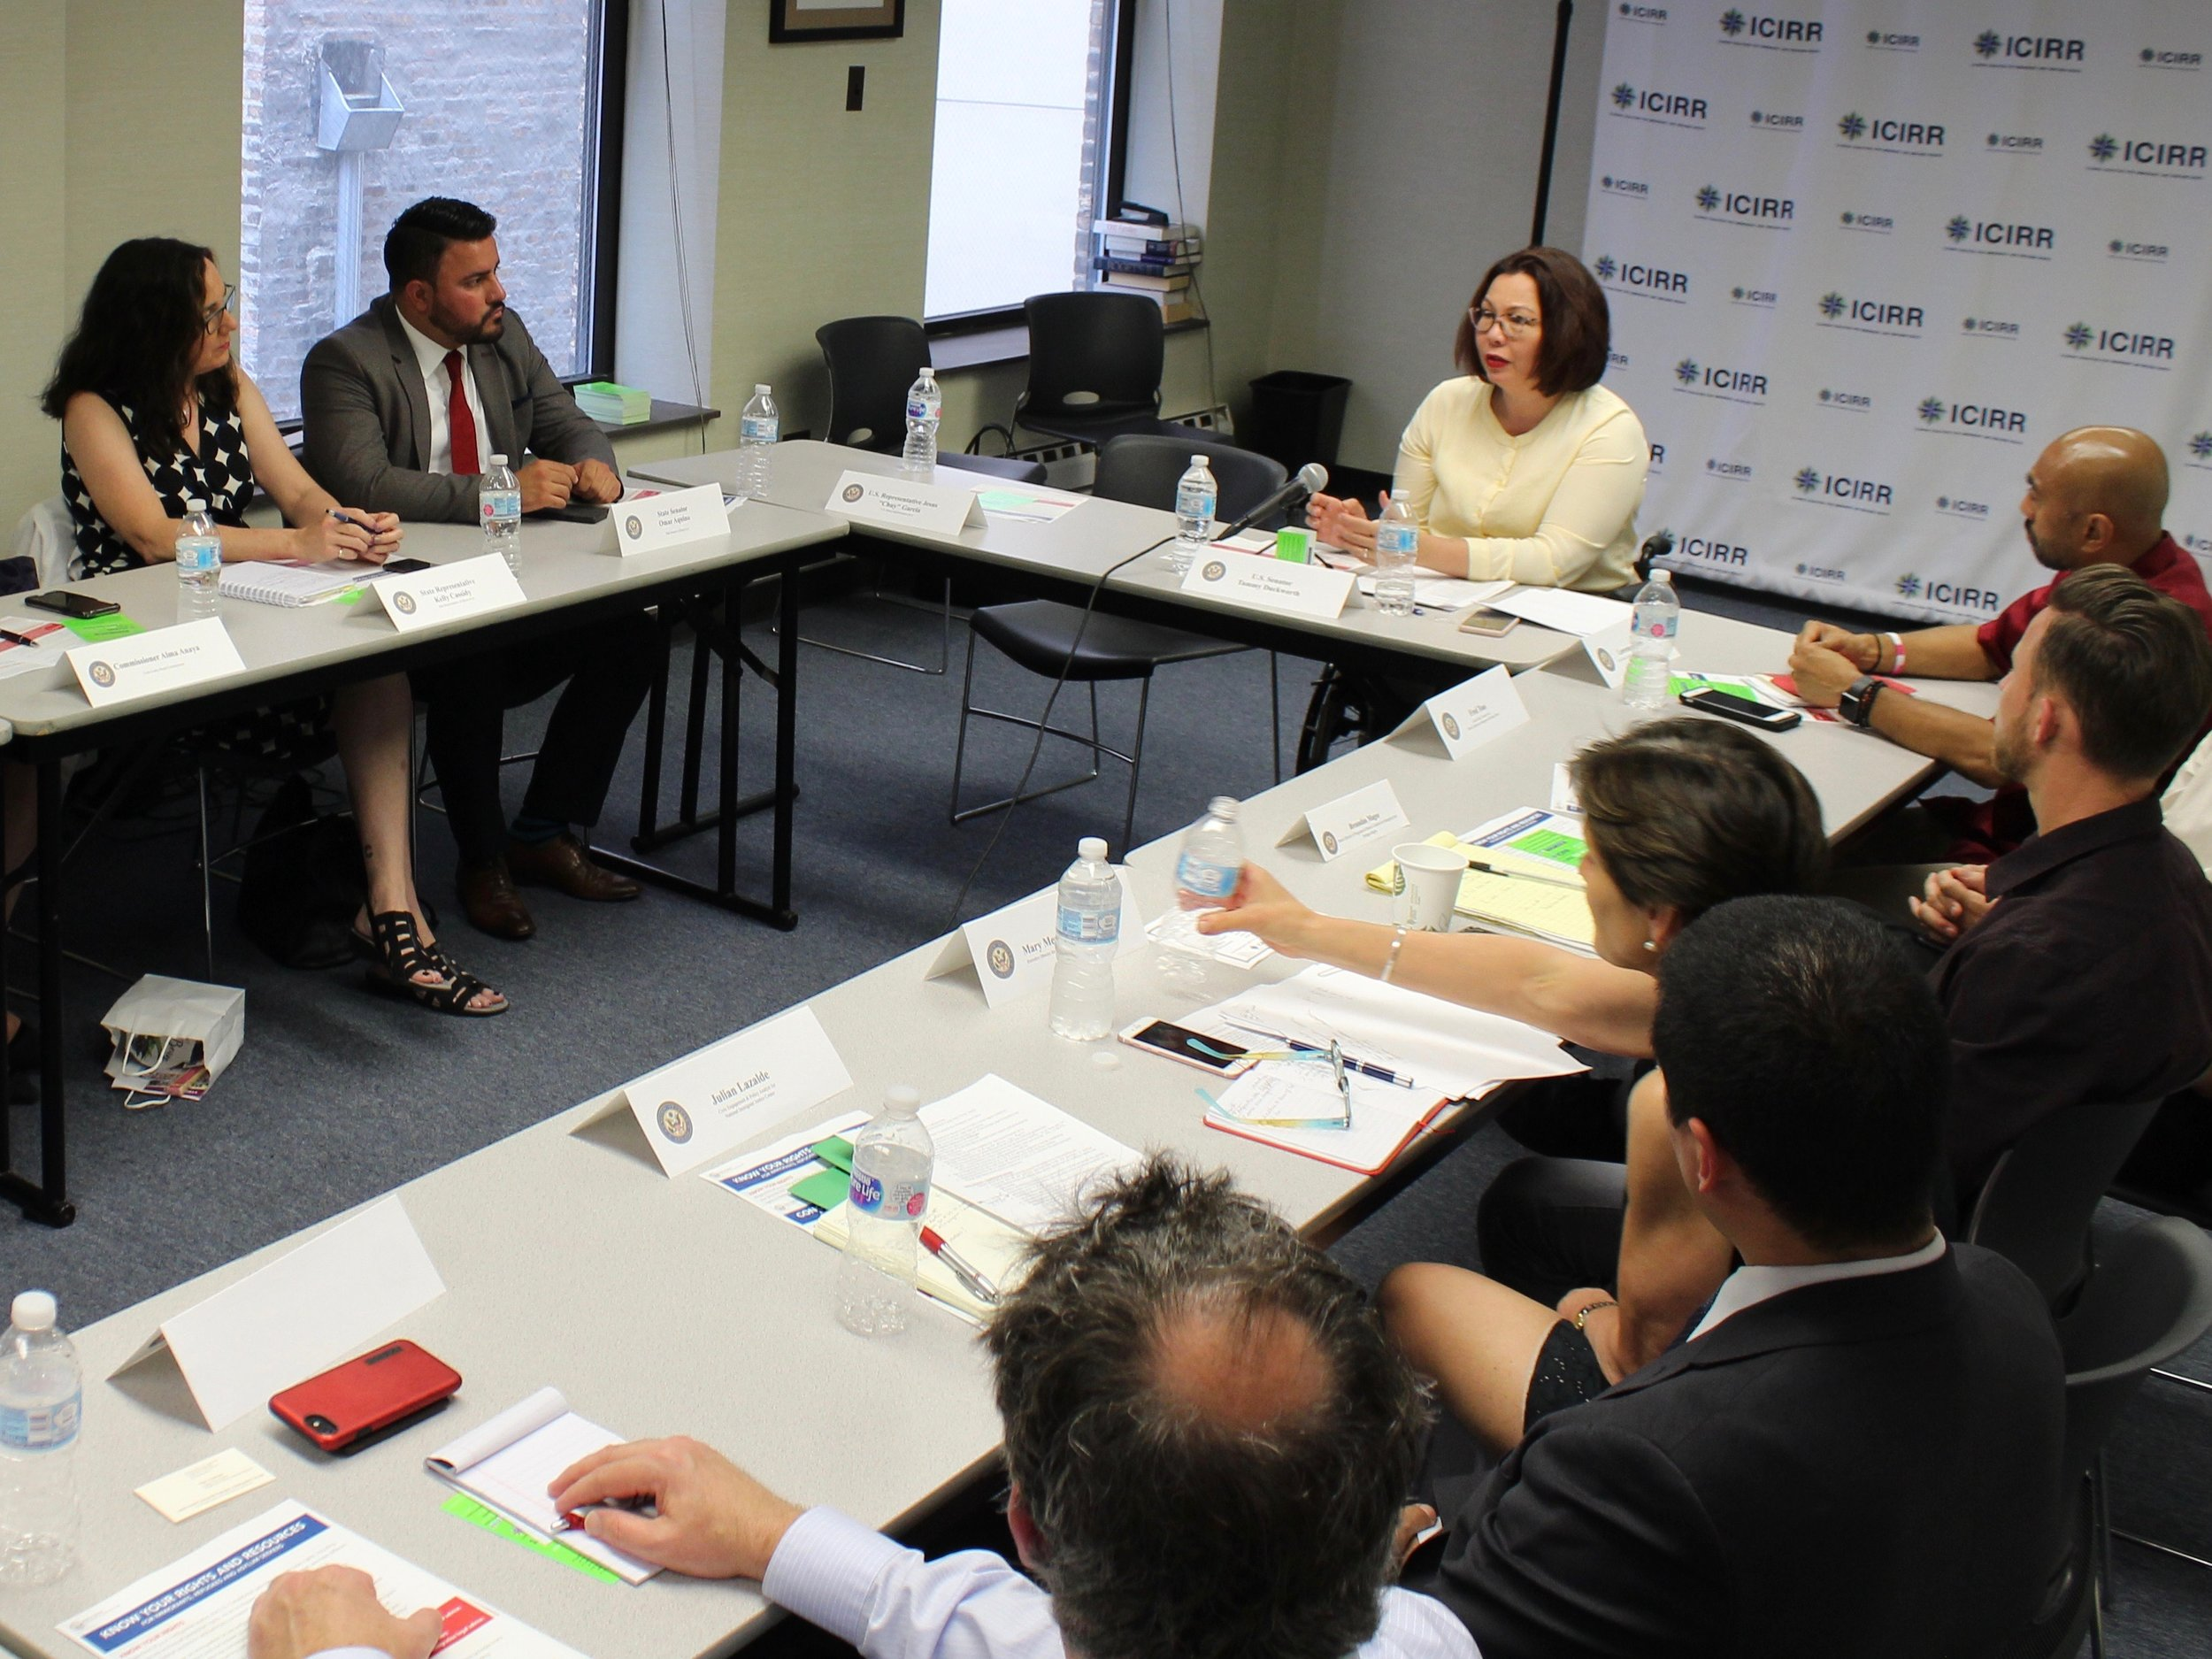 U.S. Sen. Tammy Duckworth holds a roundtable discussion with immigrant groups and state Rep. Kelly Cassidy and state Sen. Omar Aquino (left) in Chicago. (One Illinois/Ted Cox)